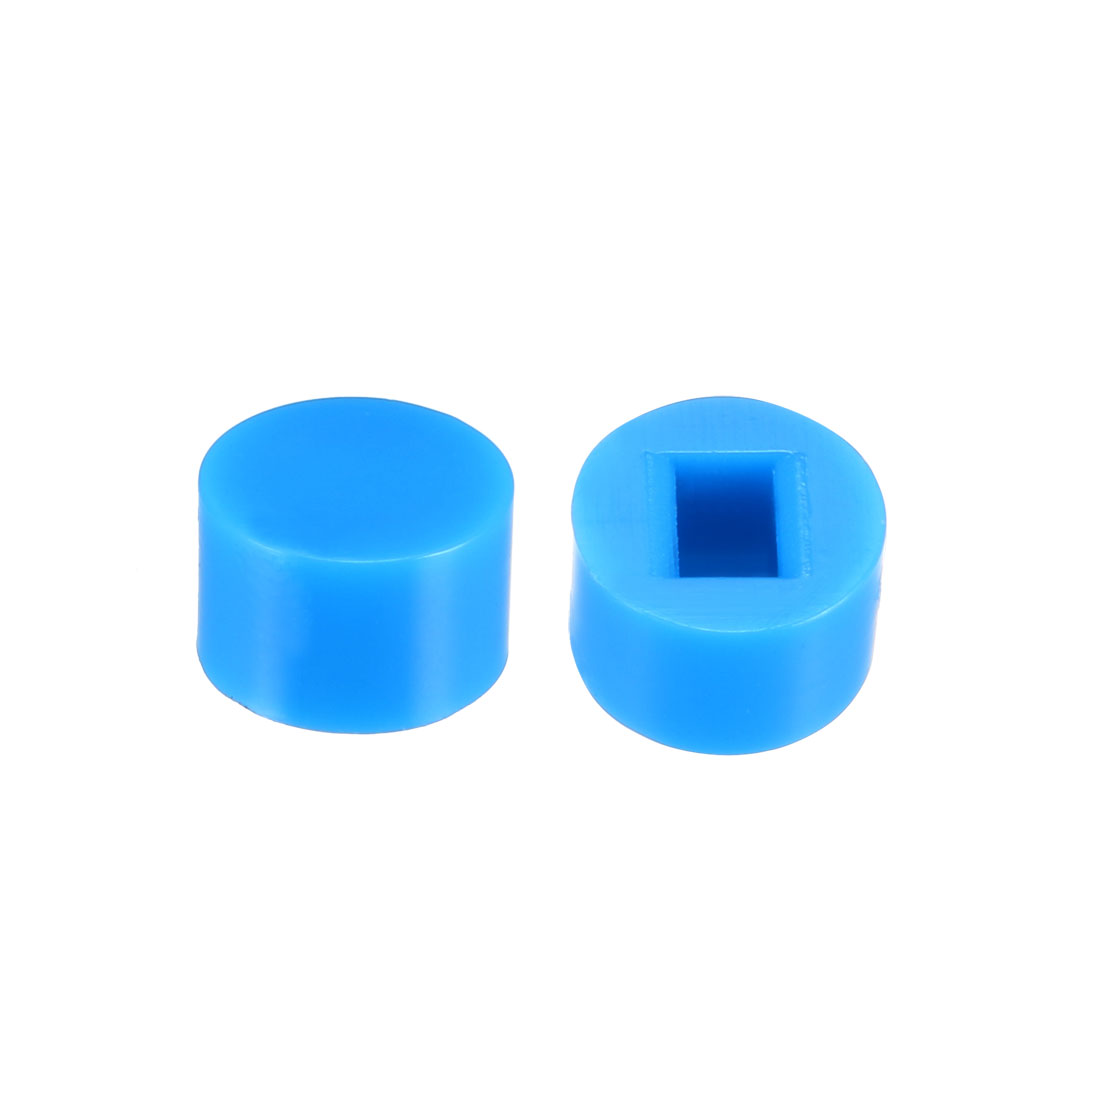 40Pcs 6x3.7mm Pushbutton Switch Caps Cover for 5.8x5.8 Latching Tact Switch Blue